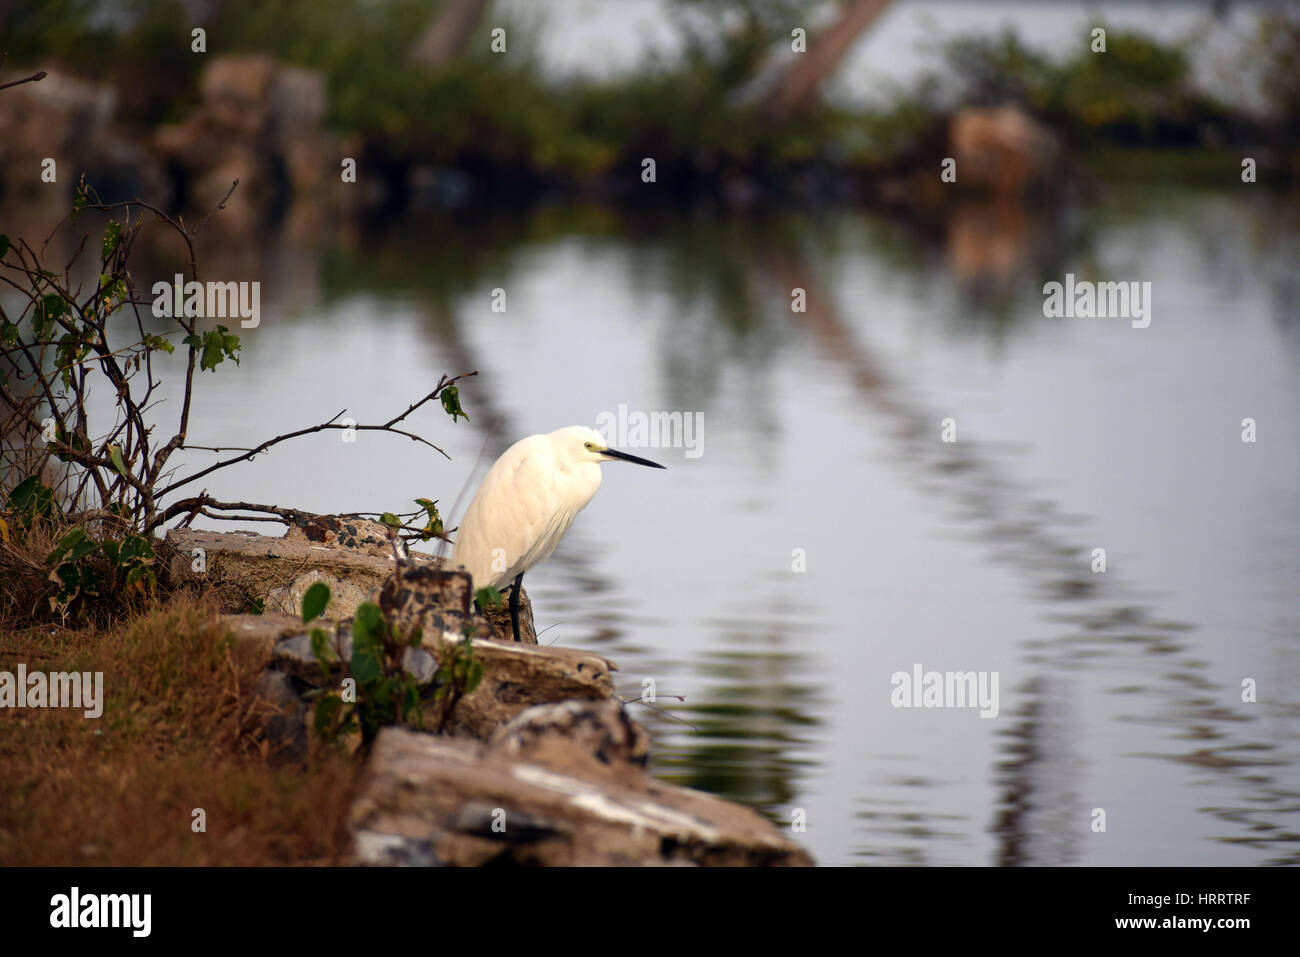 Snowy Egret is a bird type of Egret, which has bushy like feathers. - Stock Image